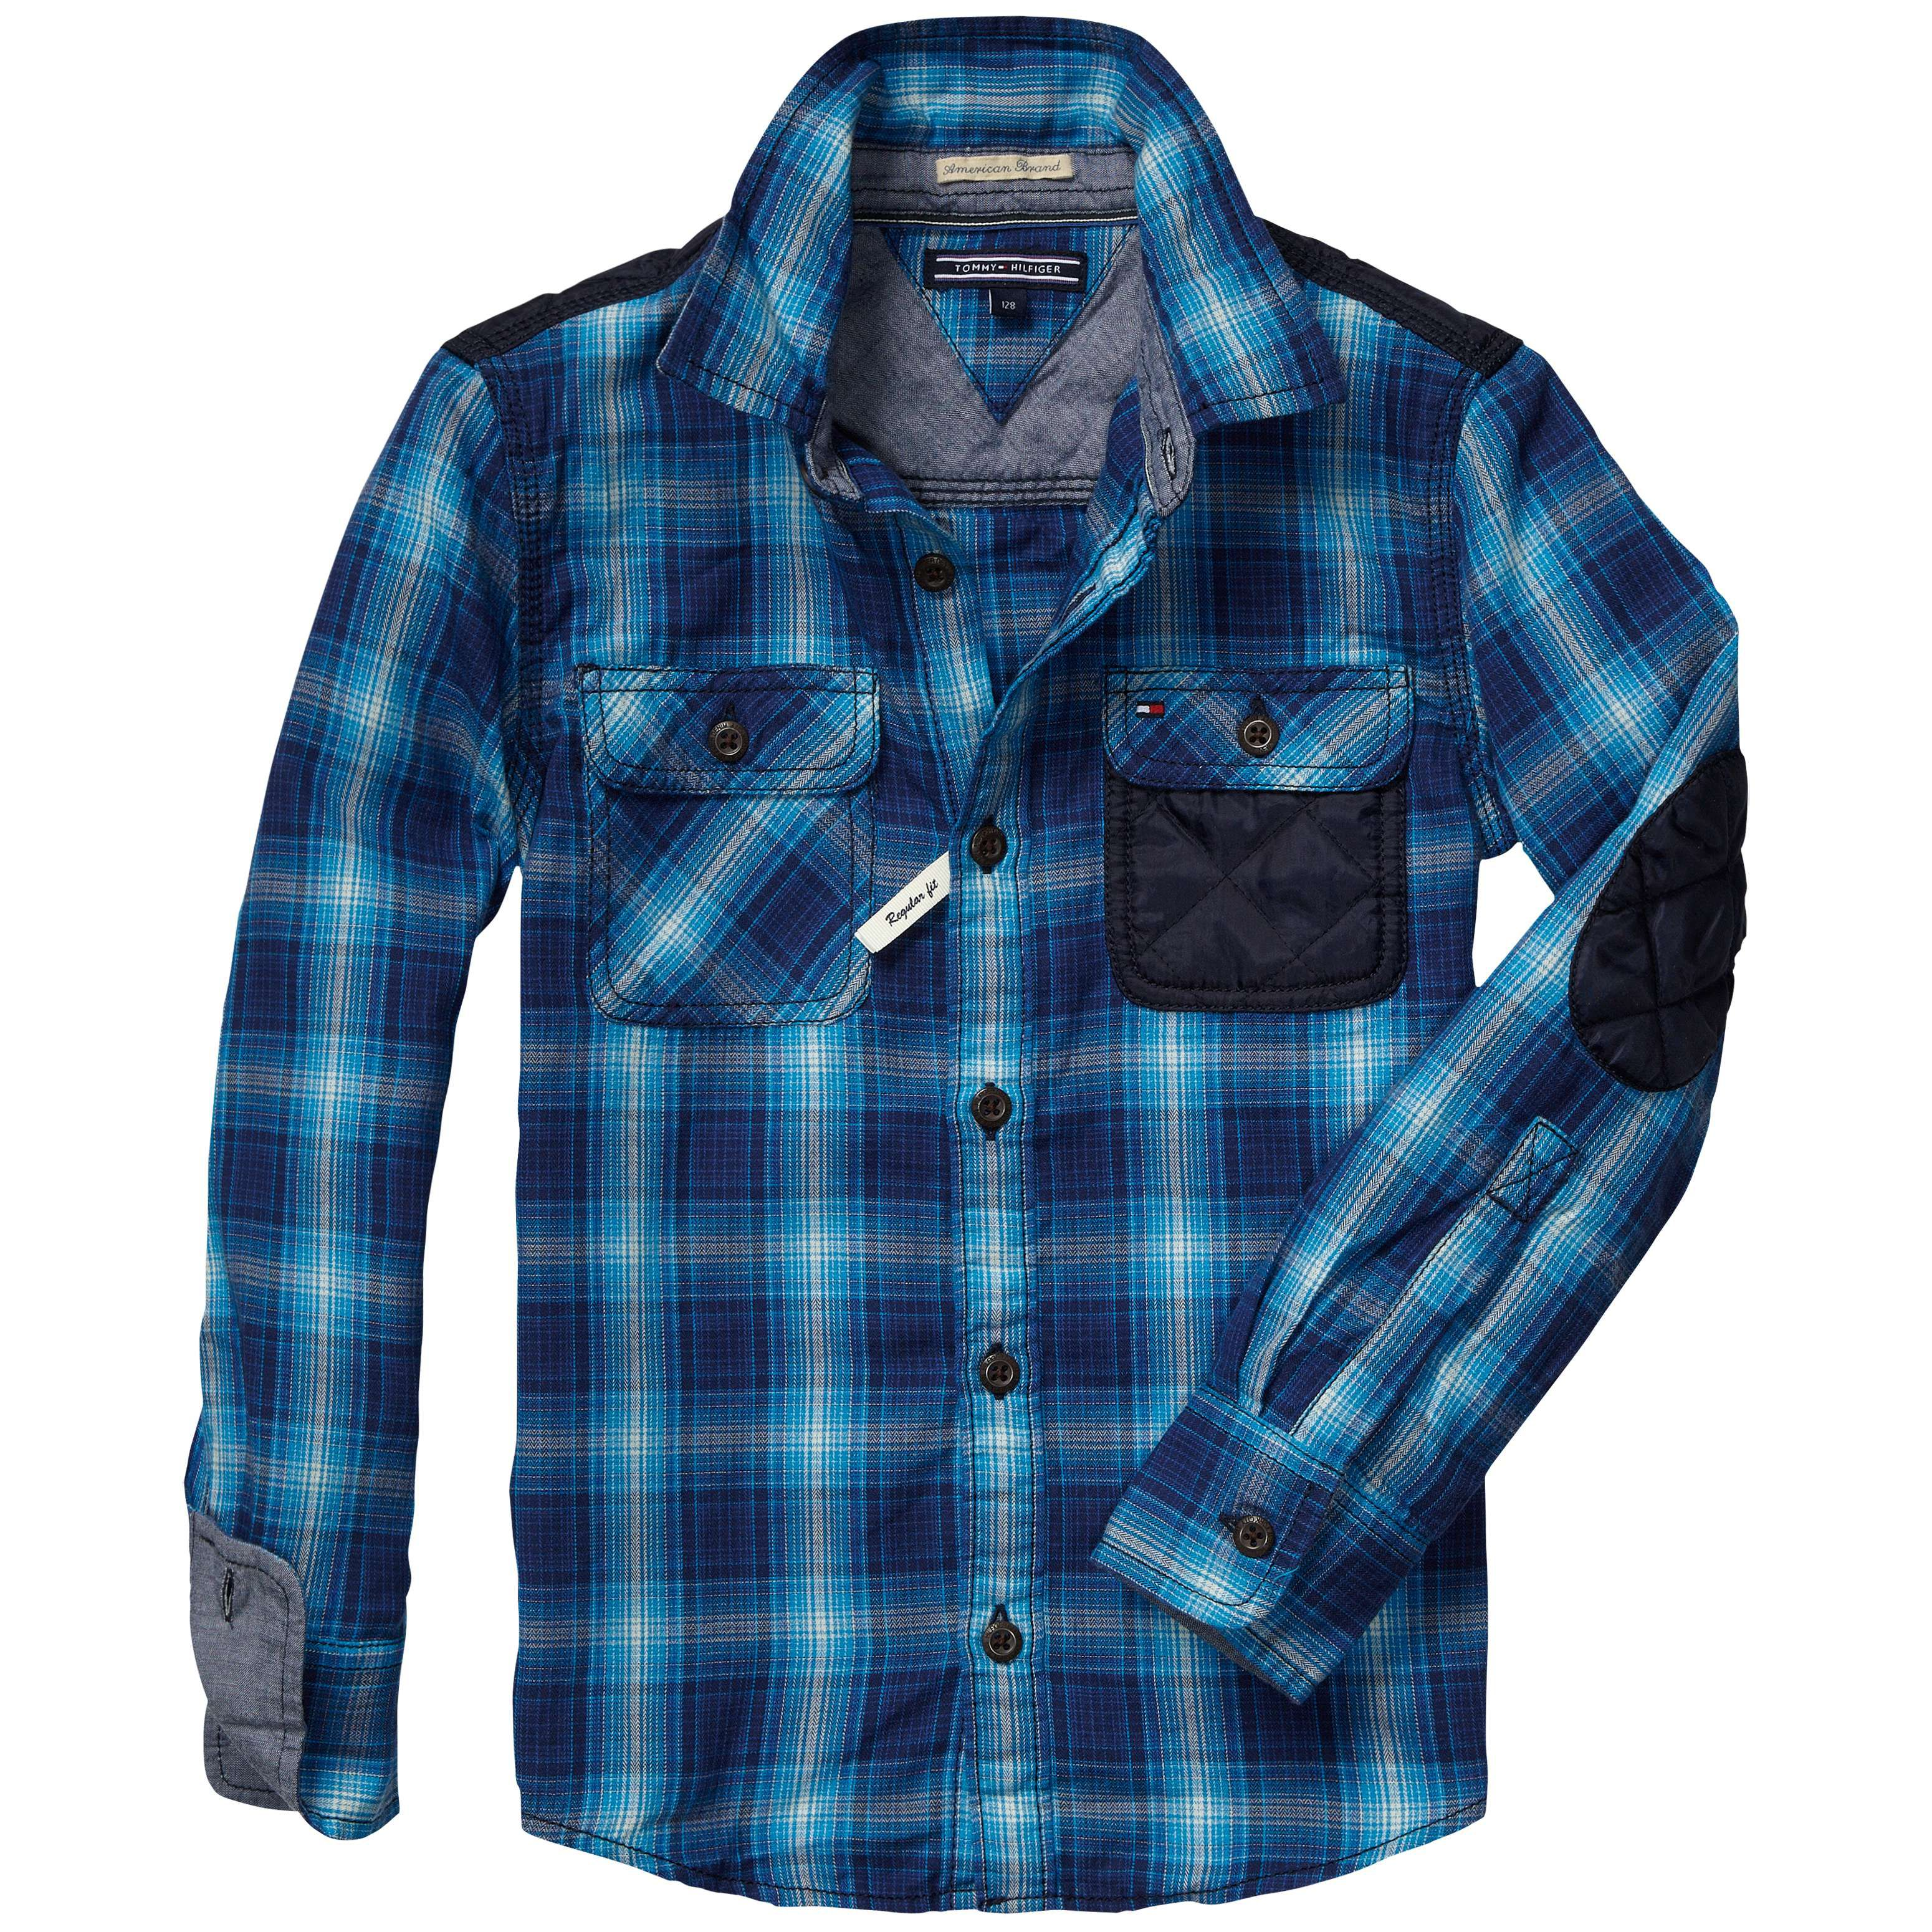 Boys herringbone check shirt